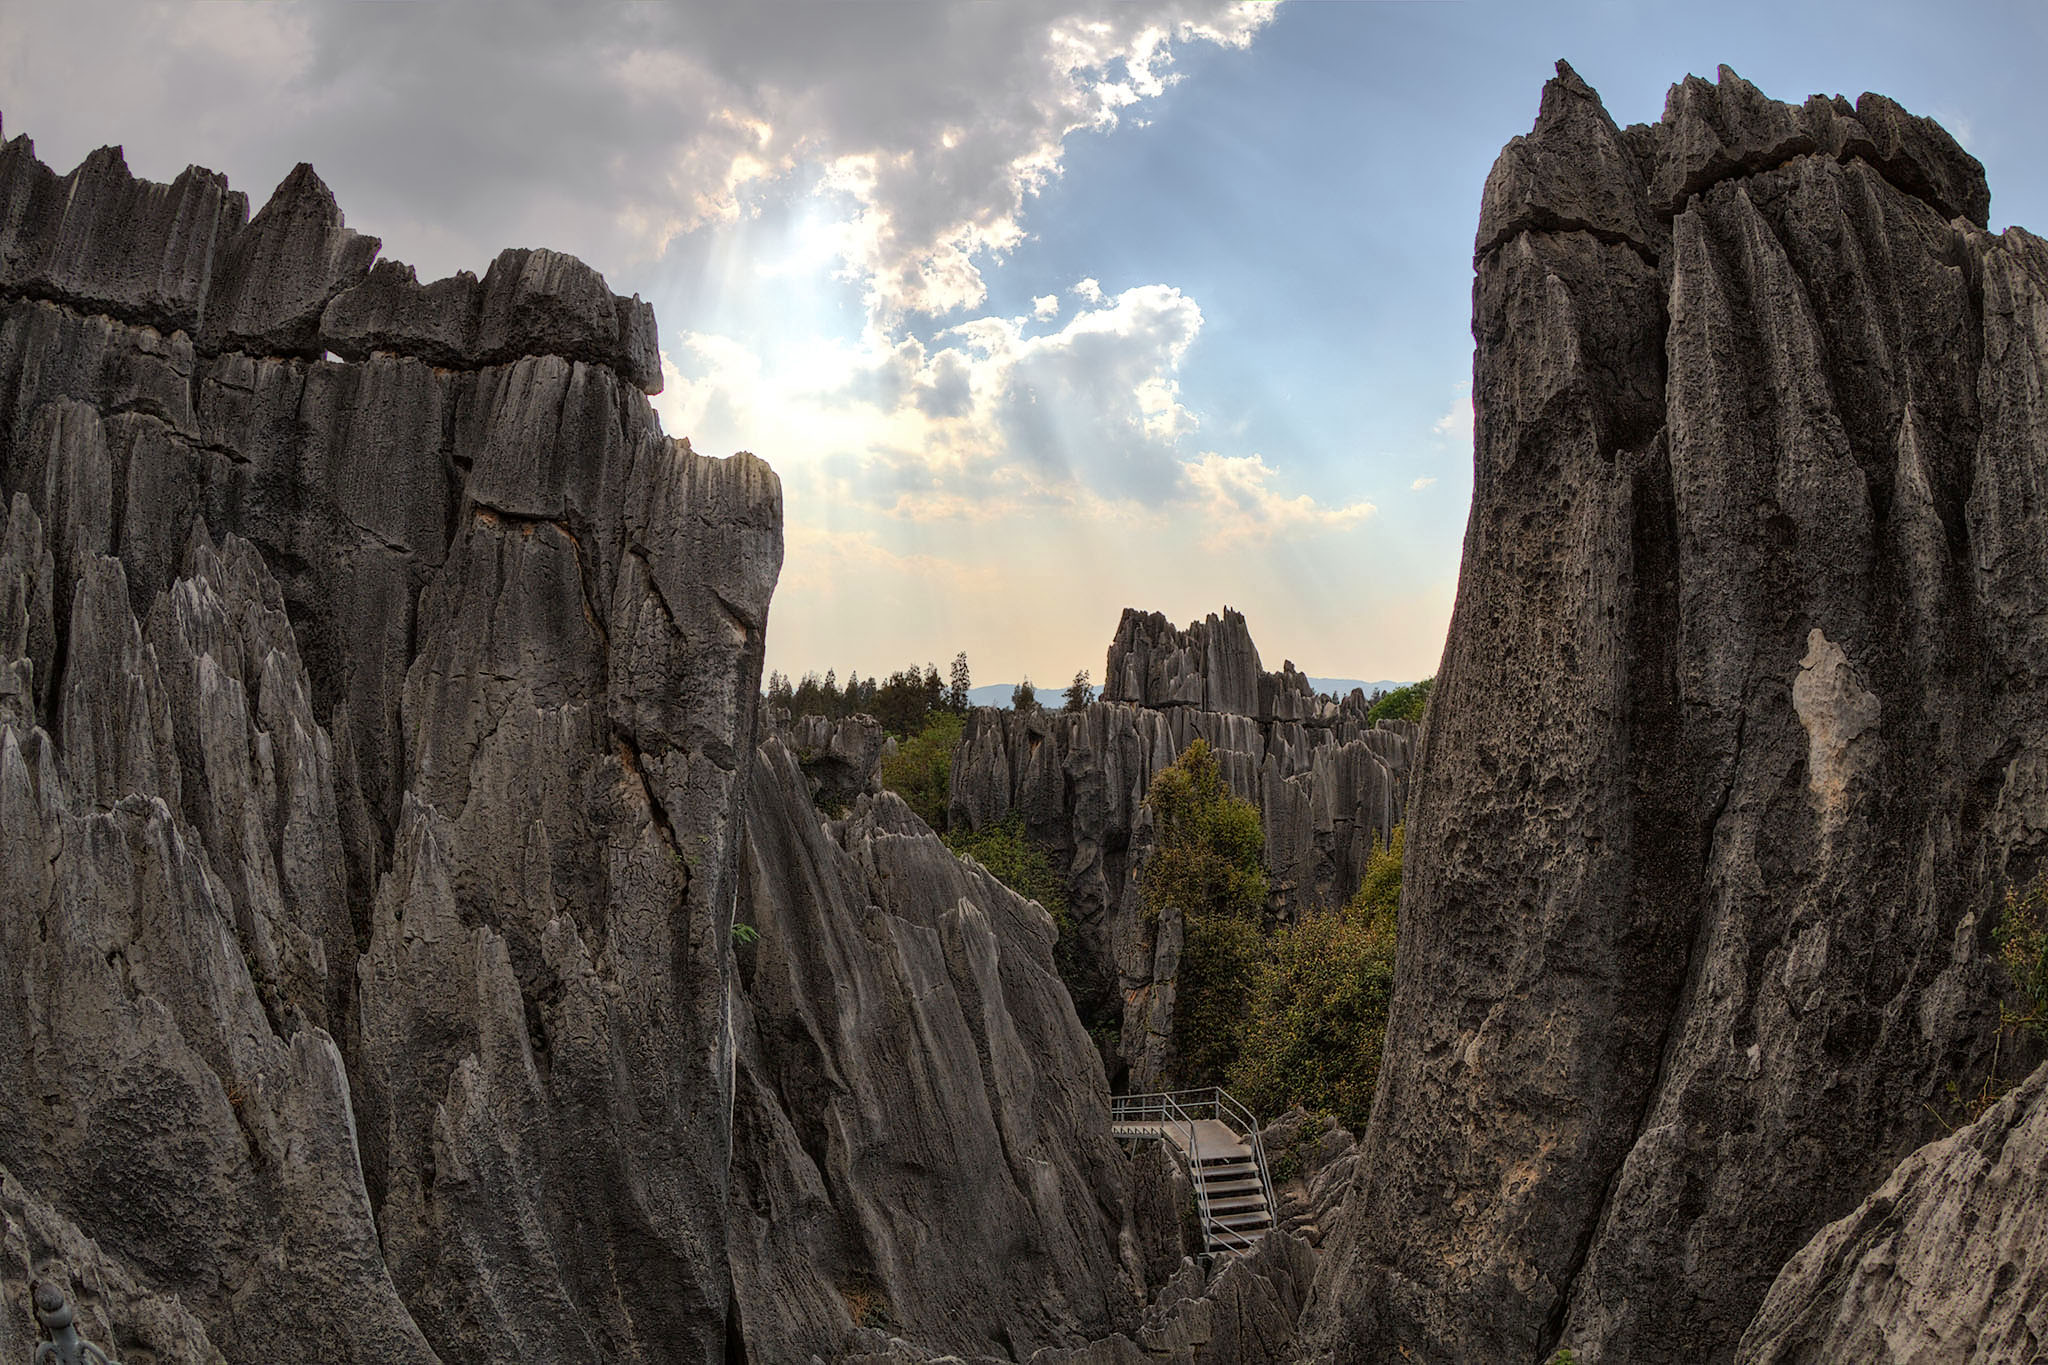 Shilin Stone Forest, Yunnan, China